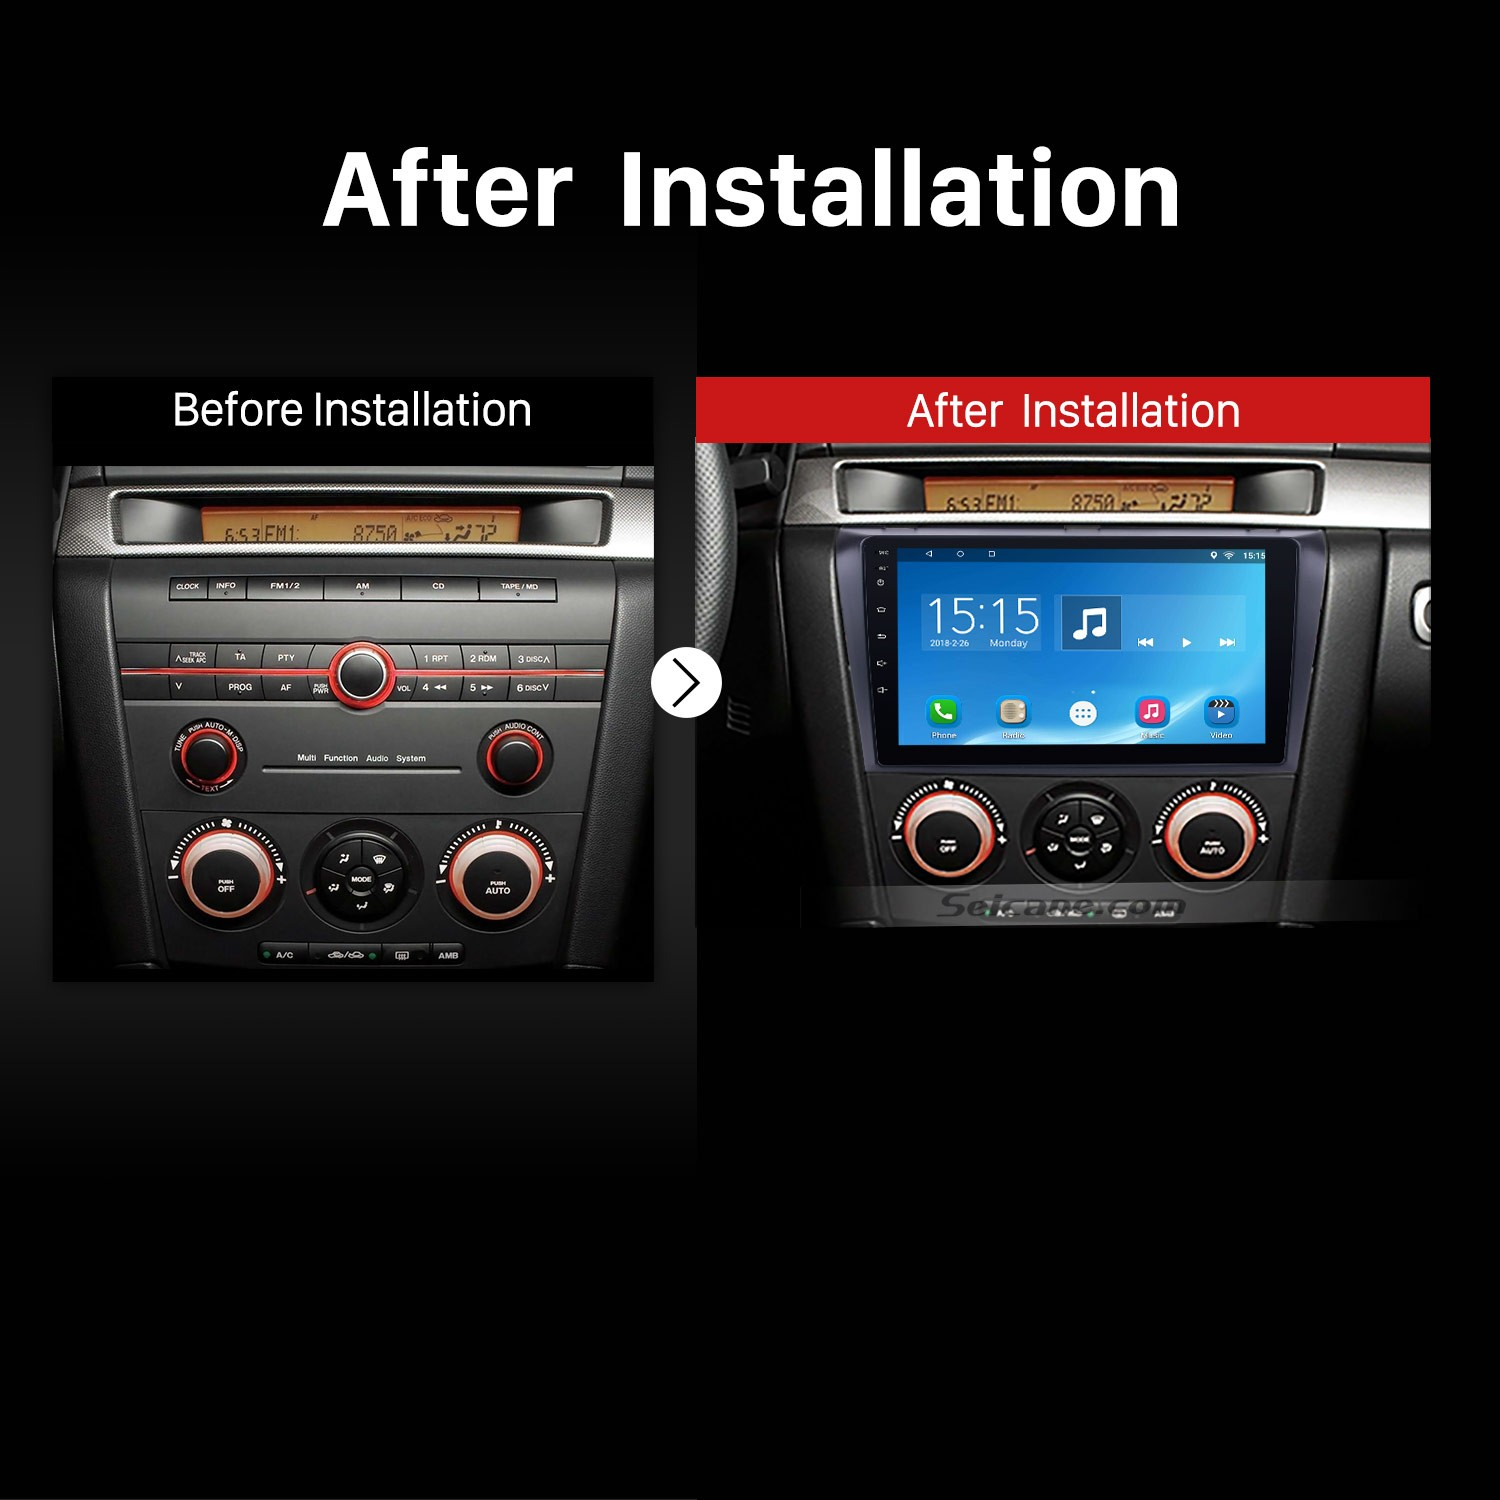 hight resolution of 2004 2005 2006 2007 2009 mazda 3 radio after installation